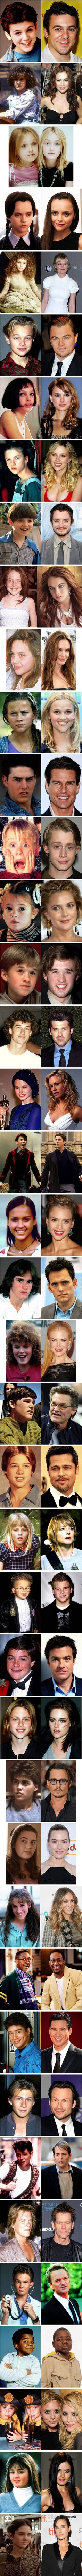 Celebrities, then and now.